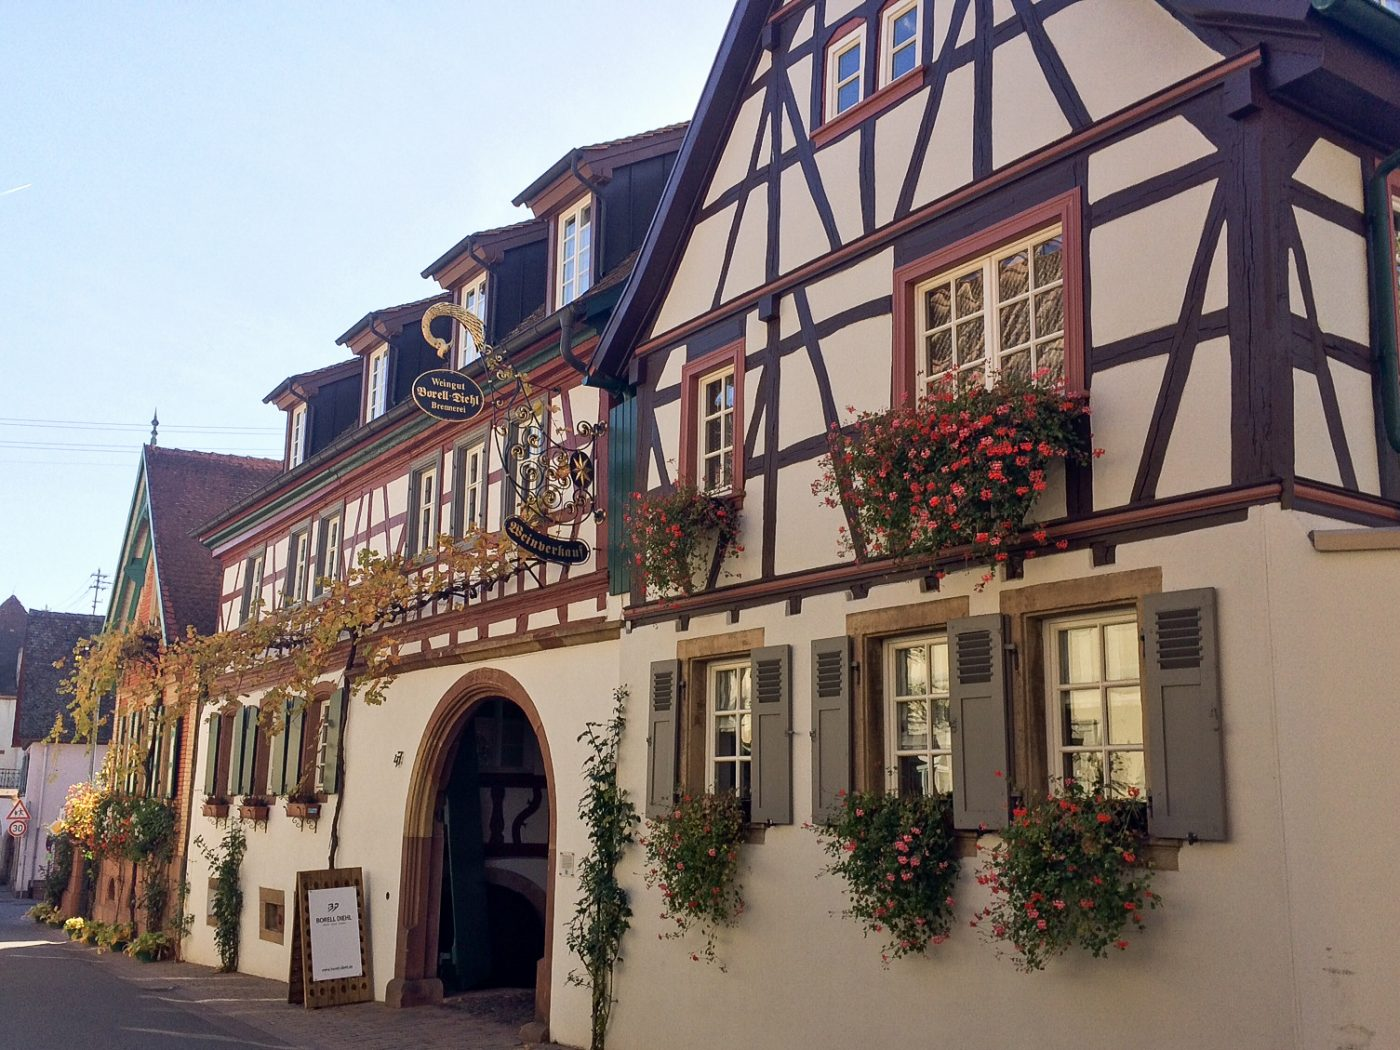 timbered facade winery Borell-Diehl, Palatinate